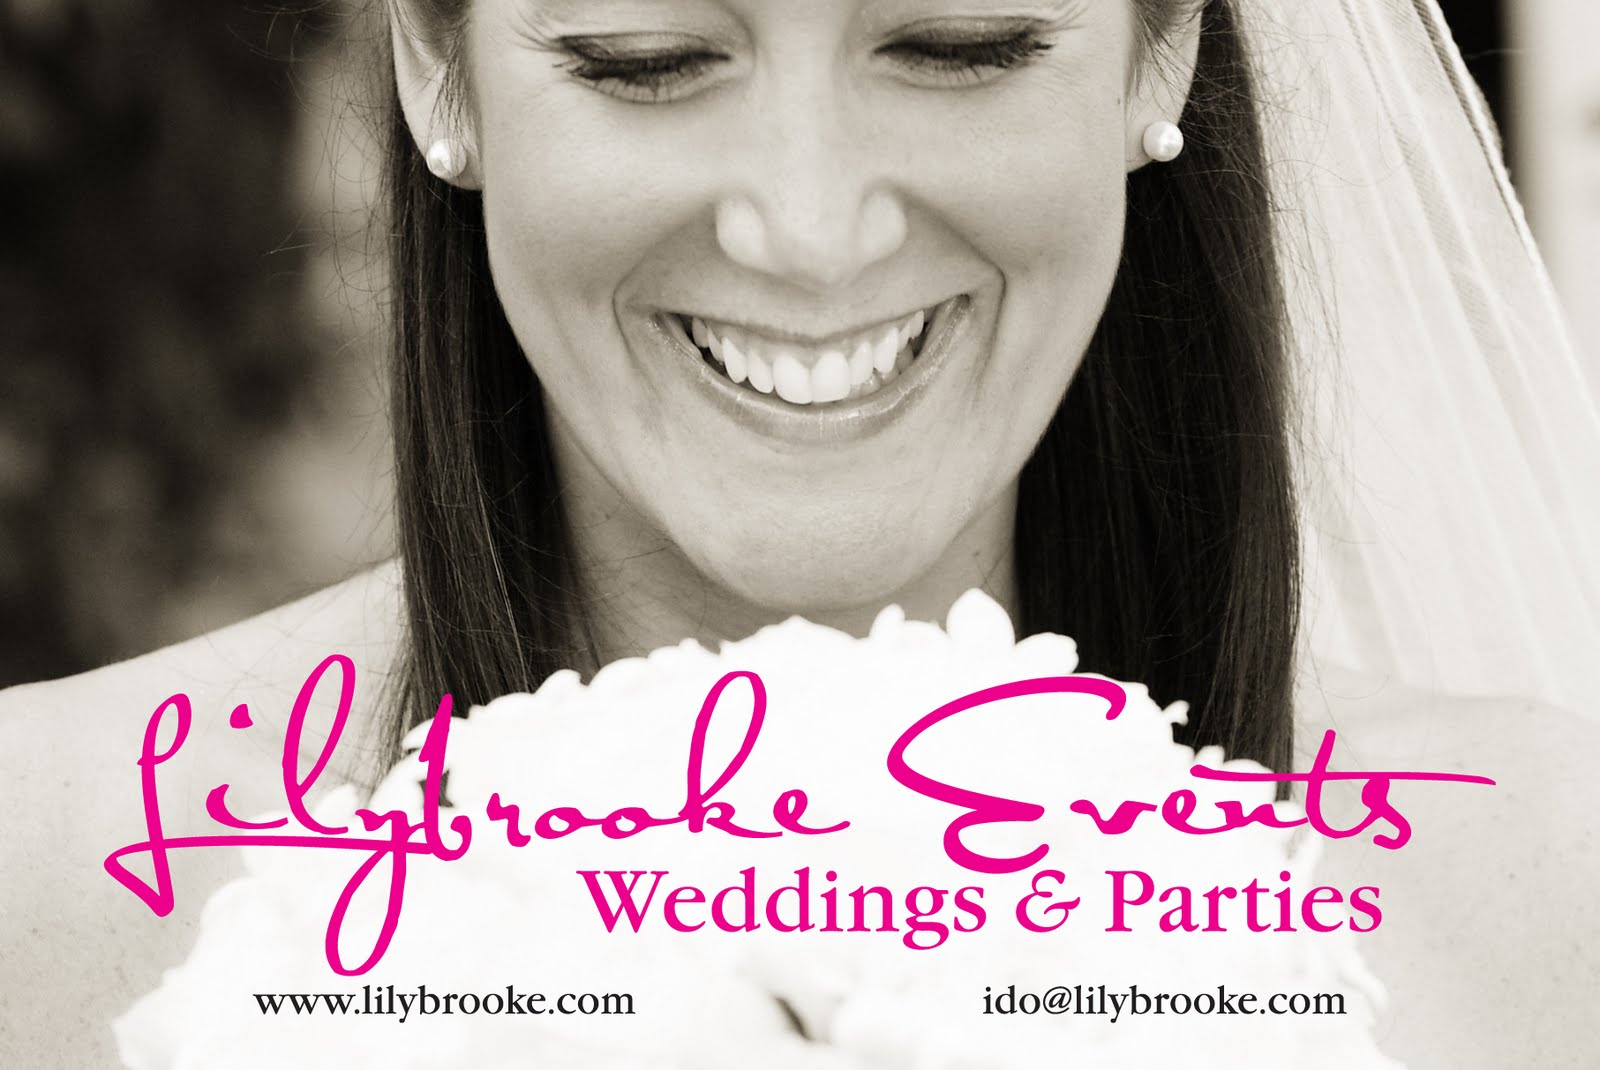 Lilybrooke Events